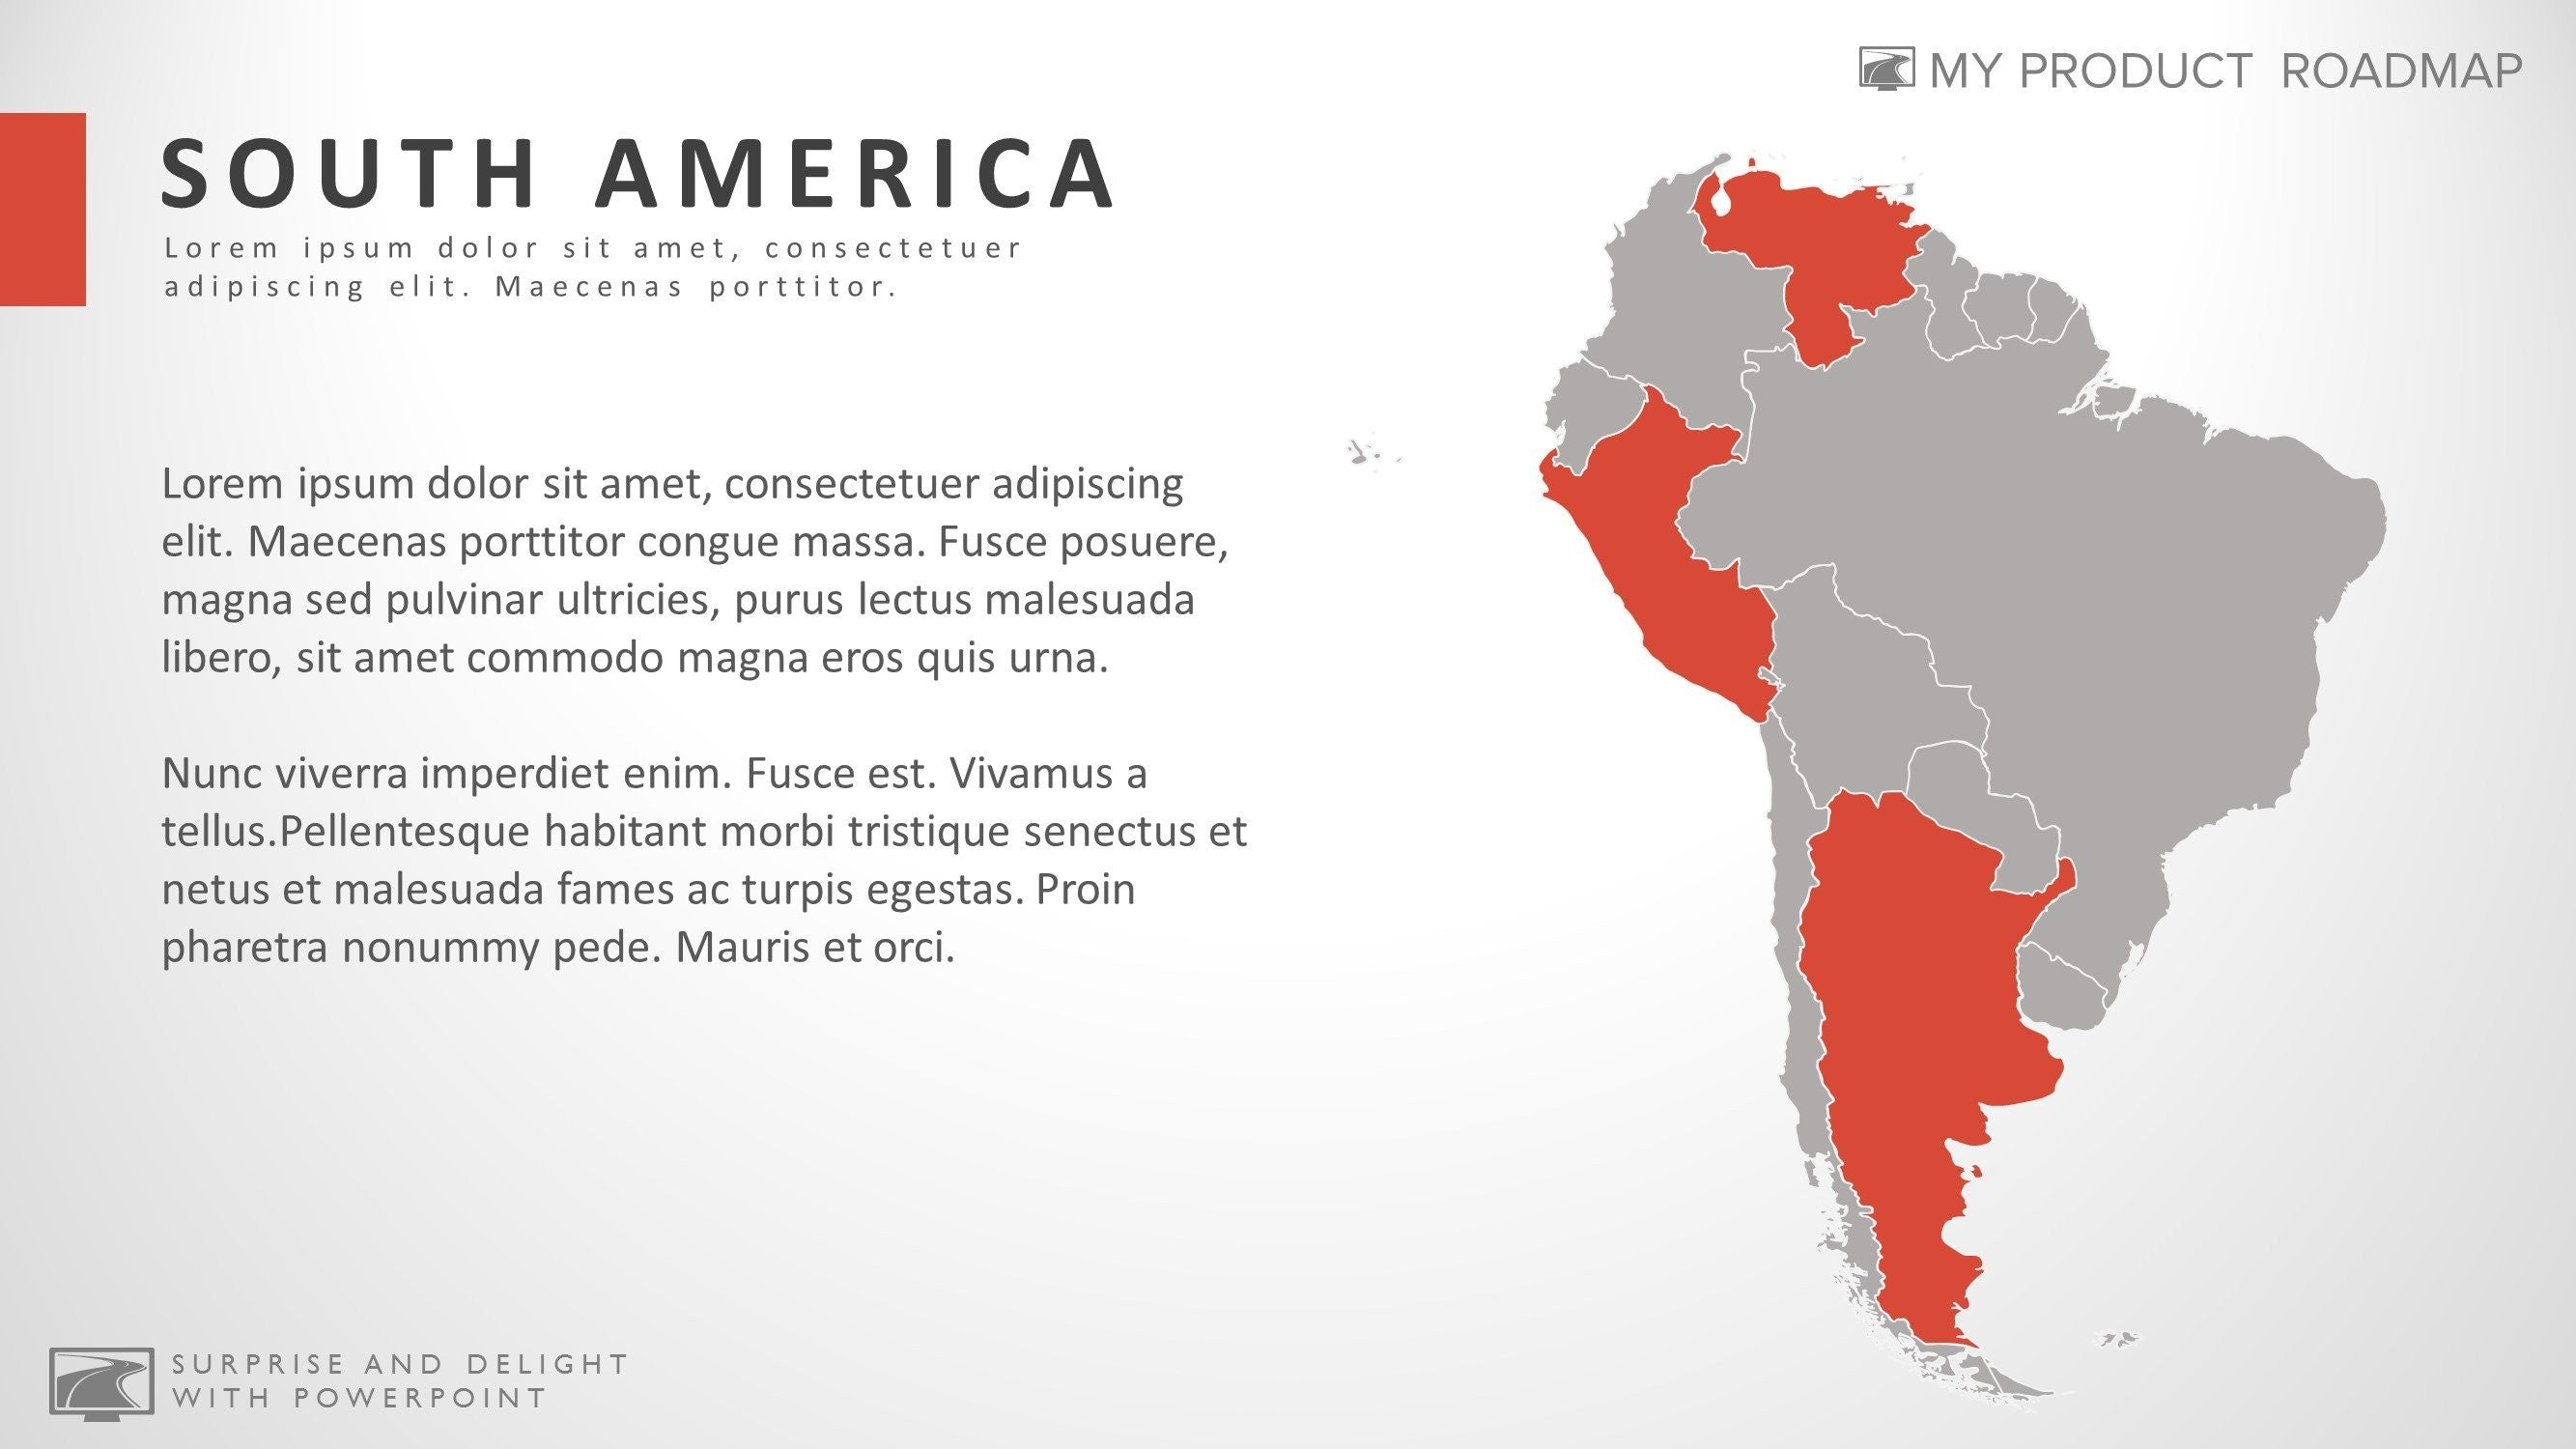 south america cool powerpoint map infographic theme template